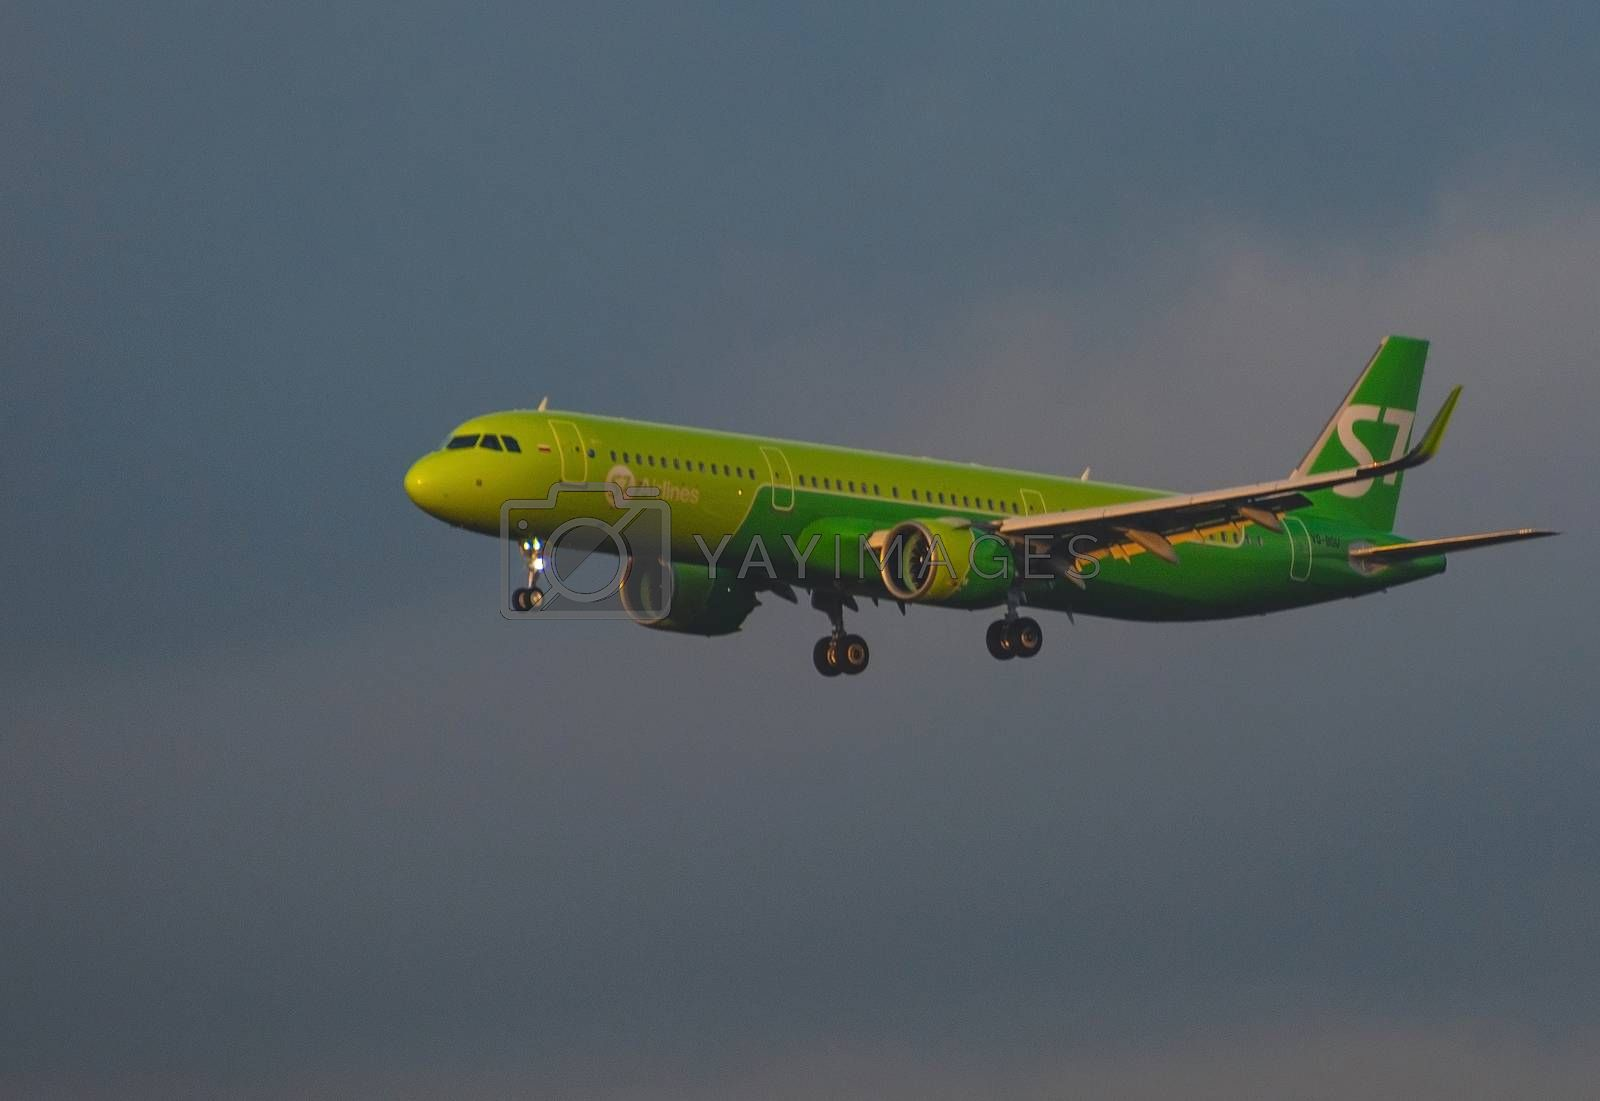 8 JULY 2018 Russia, Moscow. The aircraft Airbus A321neo S7 Airlines is landing at the Domodedovo airport.